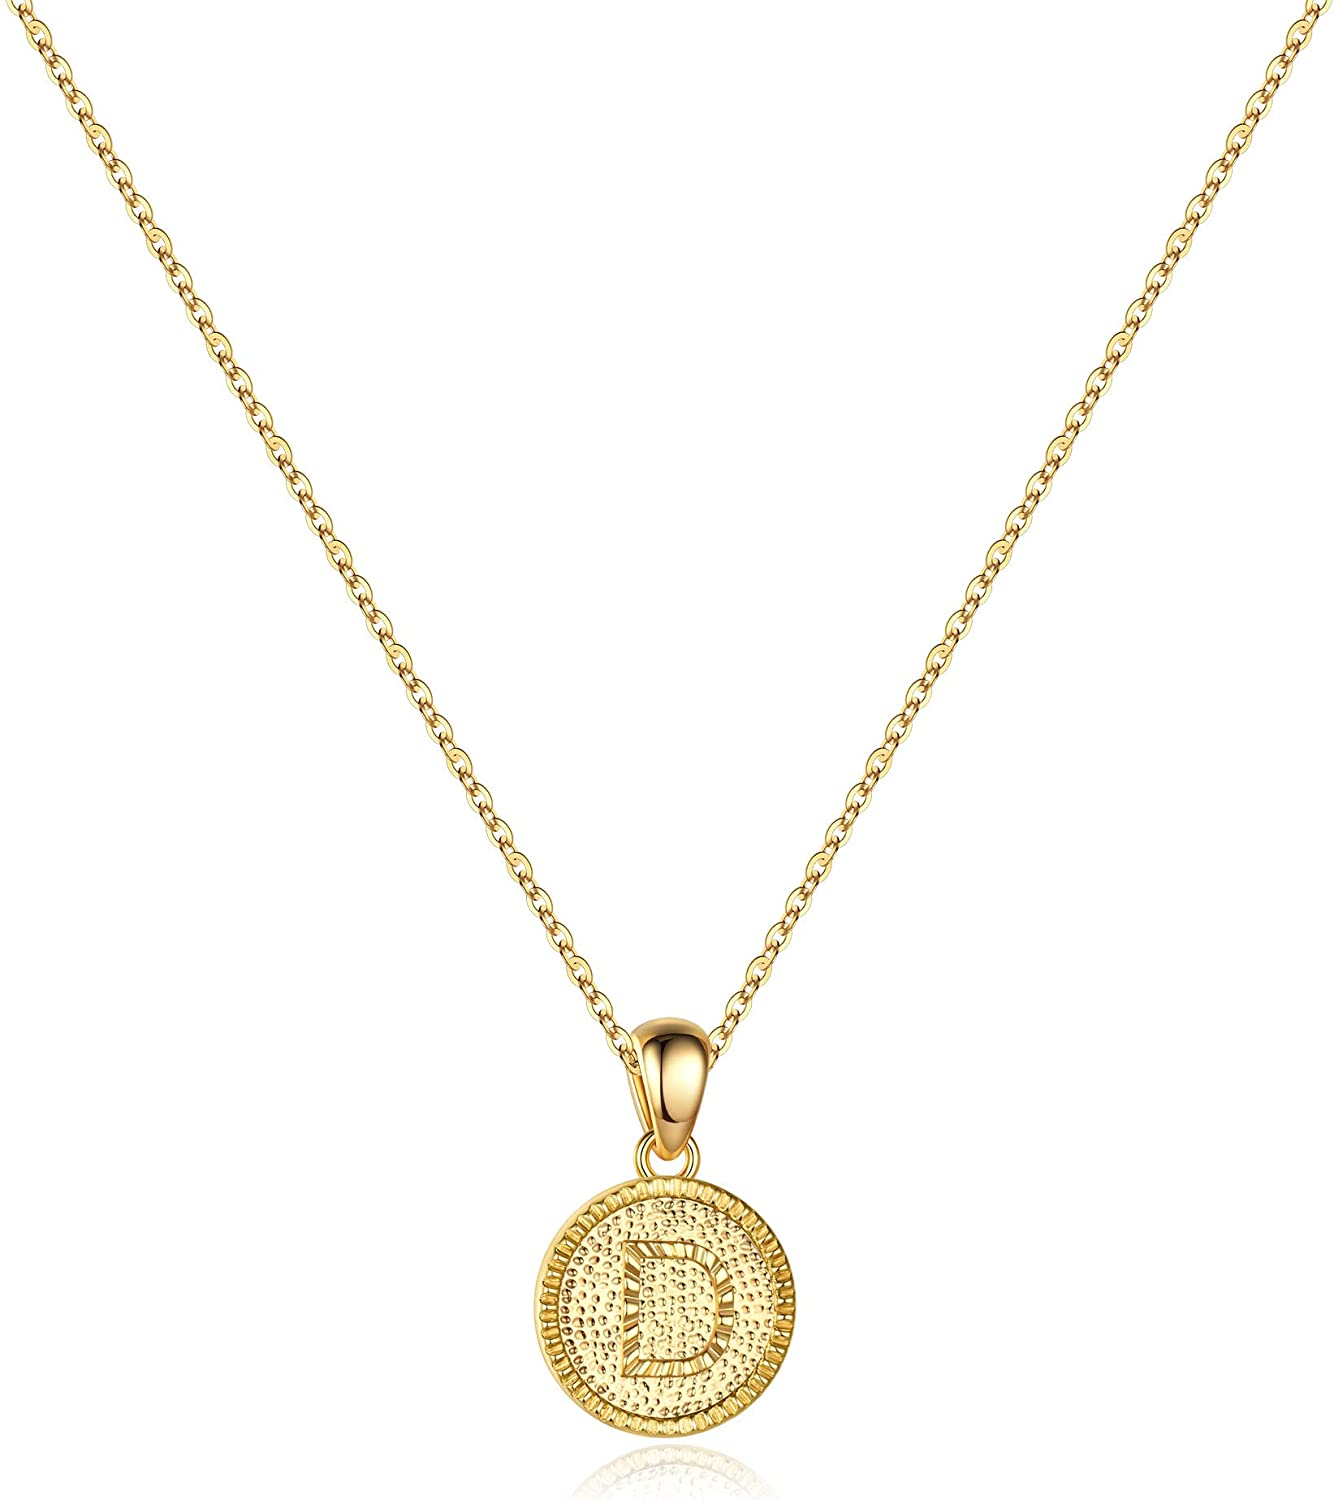 IEFSHINY Heart Popular brand in the world Initial Necklace for Women Dain 14K Gold Filled - safety